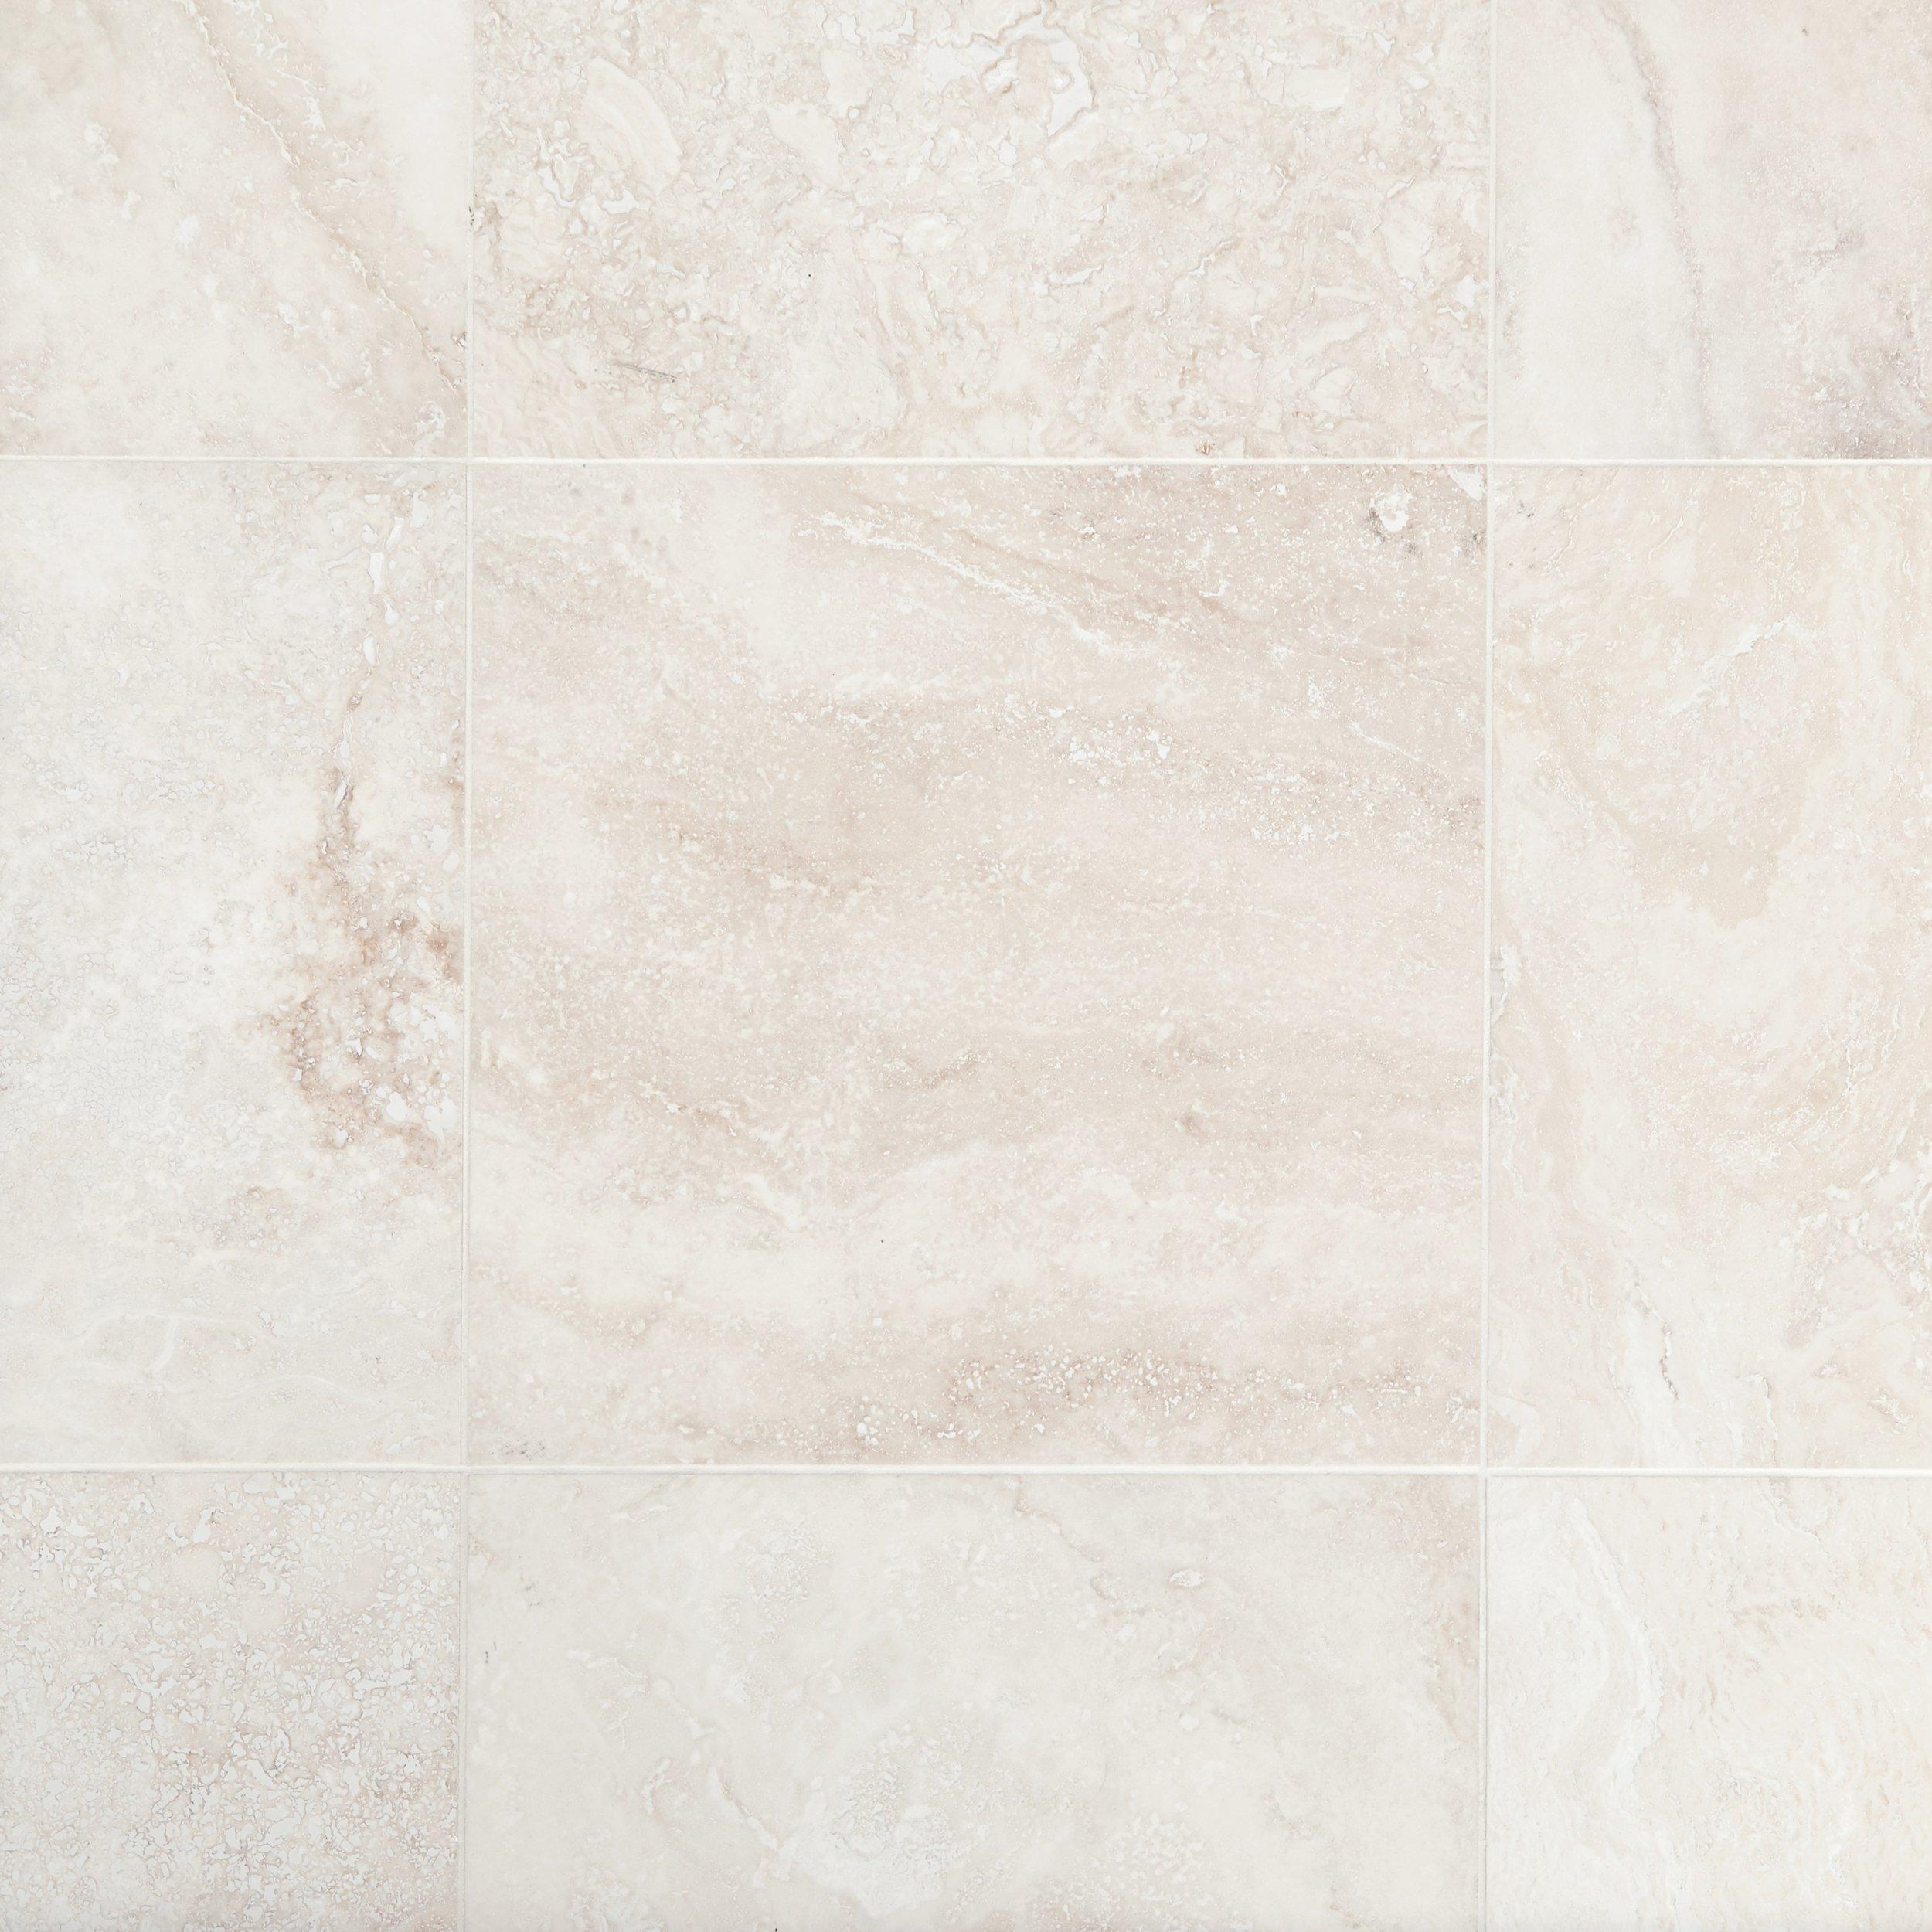 Cascade White Premium Honed Travertine Tile   18 X 18   100189547 | Floor  And Decor